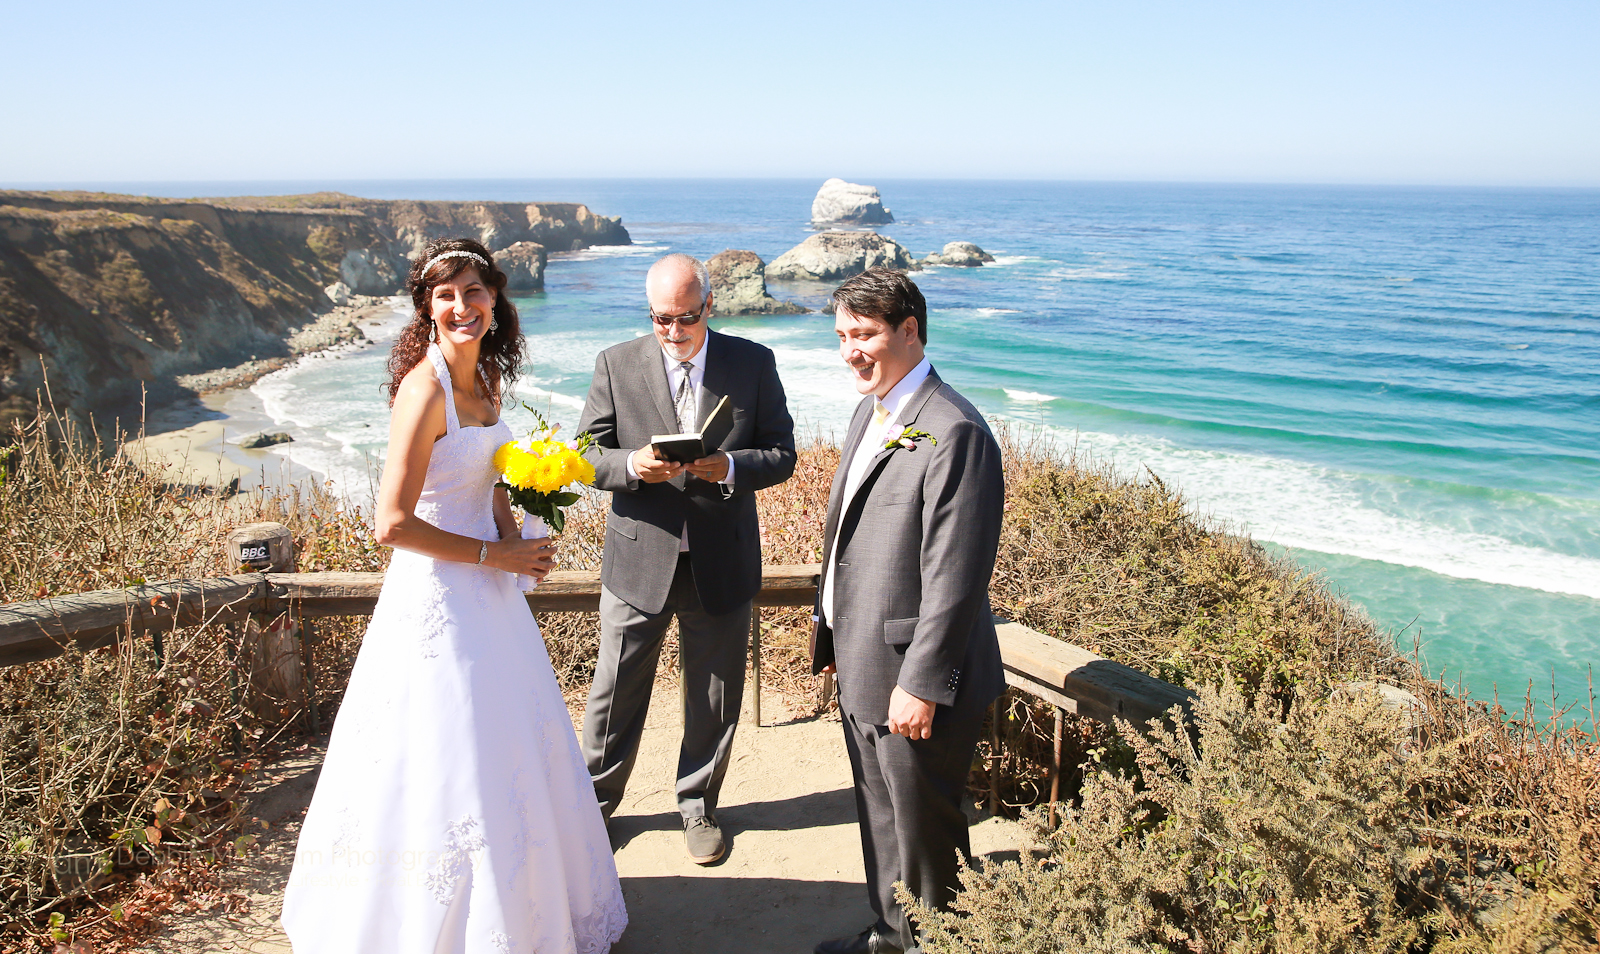 destination-wedding_small-wedding_big-sur_california-coast_ocean-view_gorda_wedding-photographer_debbie-markham-4261